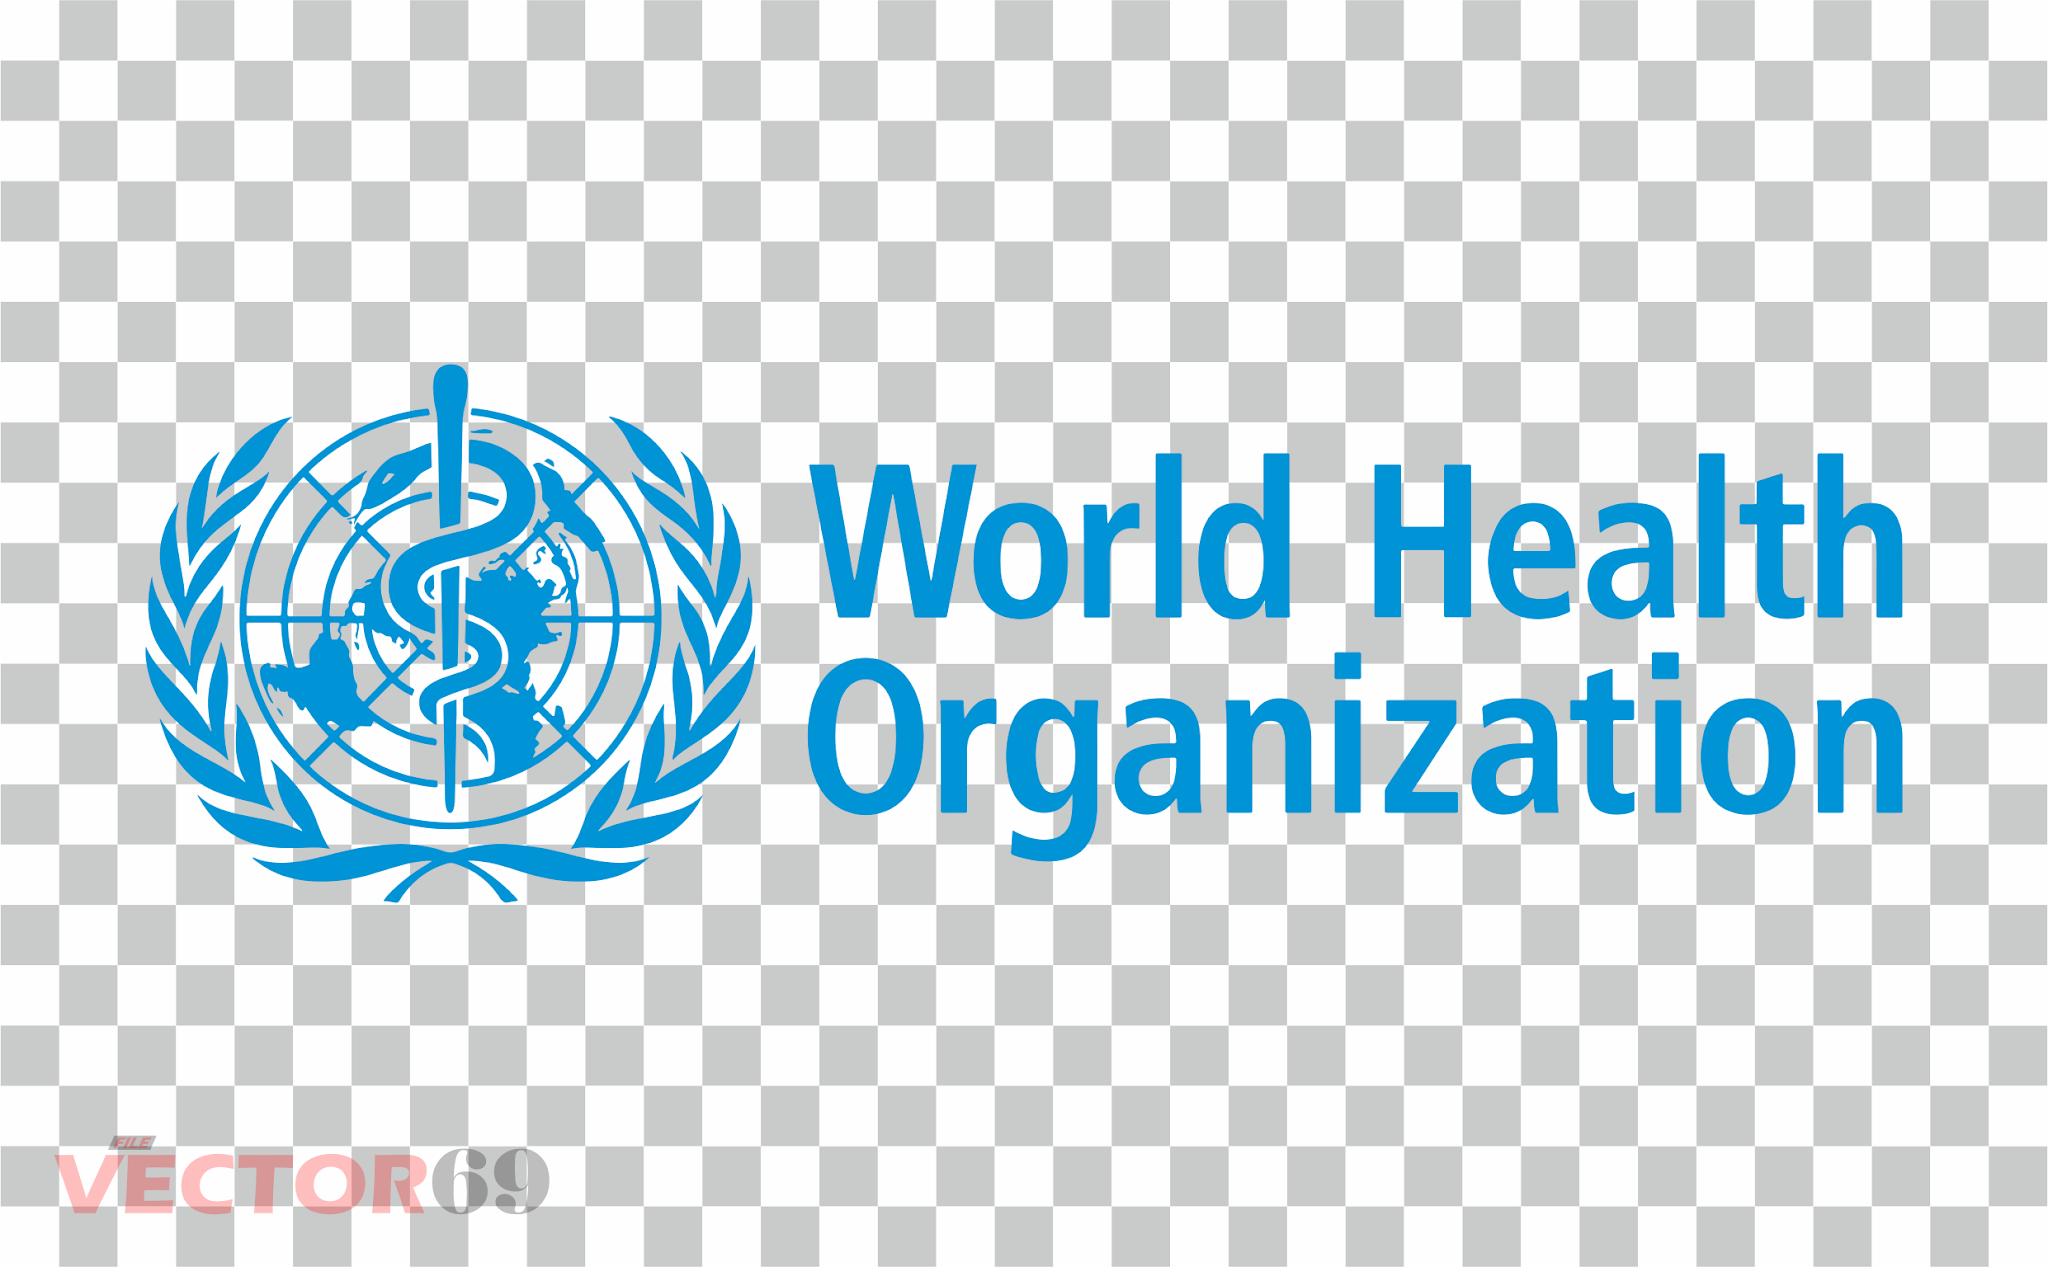 WHO (World Health Organization) Logo - Download Vector File PNG (Portable Network Graphics)